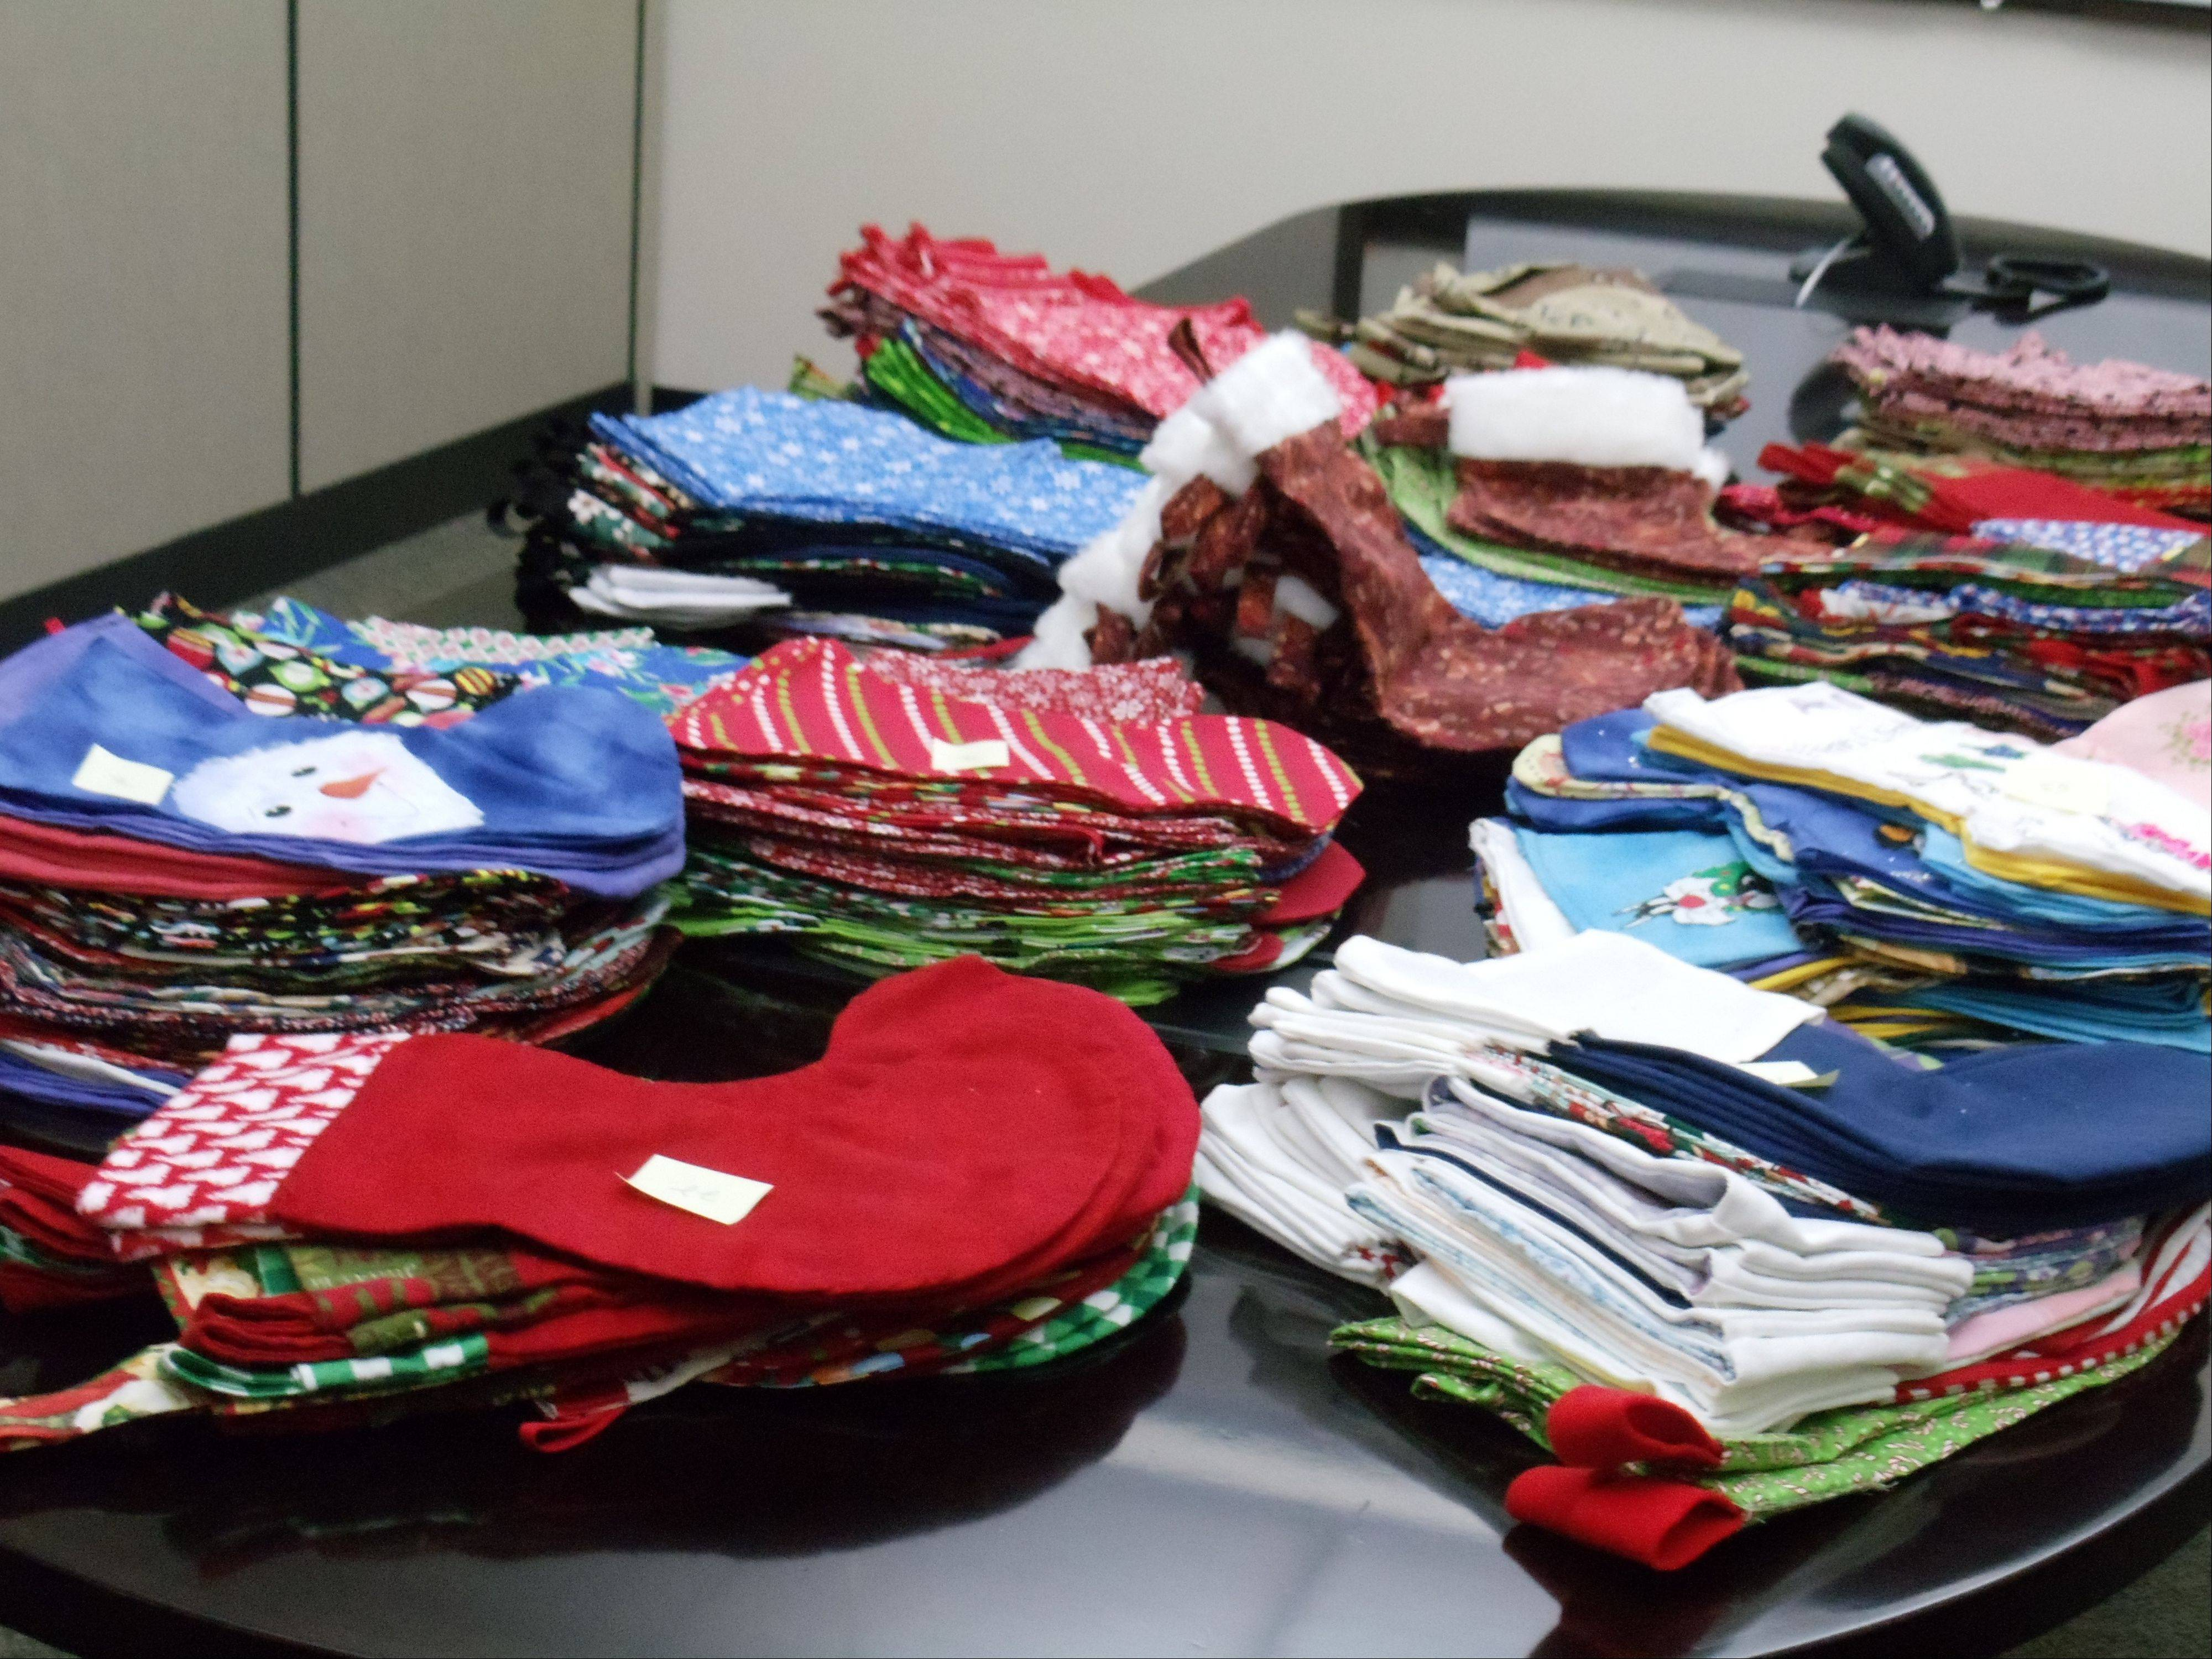 A group of DuPage County employees produced 885 stockings that were filled by Operation Support Our Troops and mailed to servicemen and women overseas.